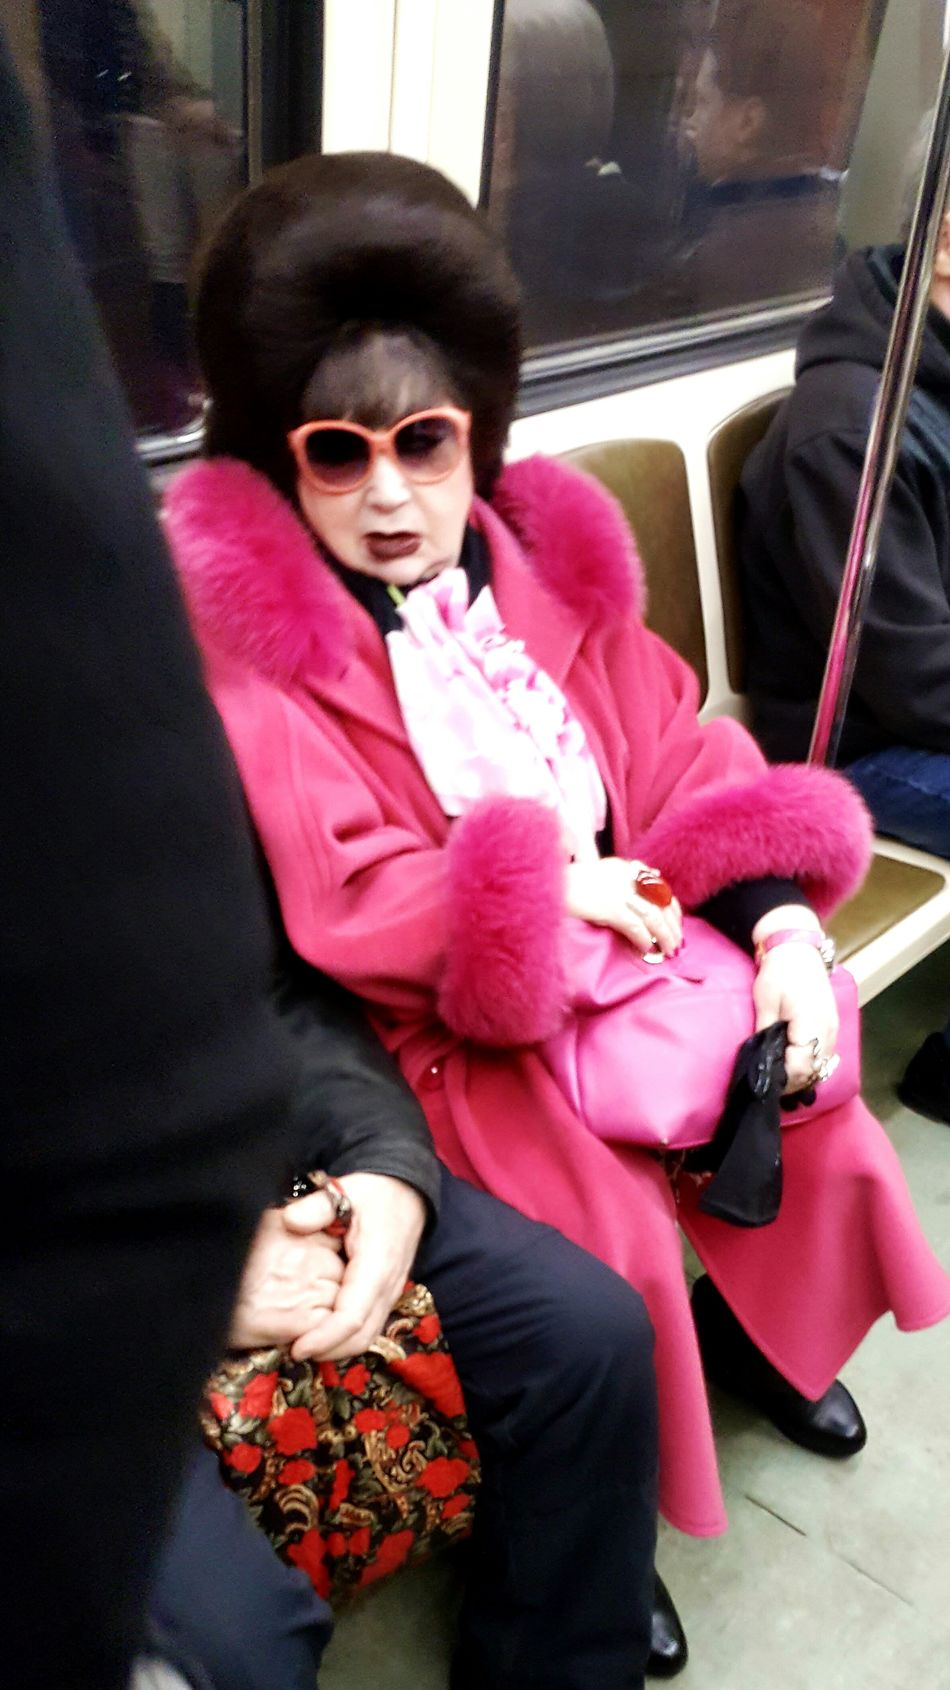 Sunglasses Pink Color Sitting People Russian Russian Woman Typical Carrige Train Station Russia Moscow Metro Station Metro Transportation Metro Moscow Subway Station Travel Destinations Tube Station